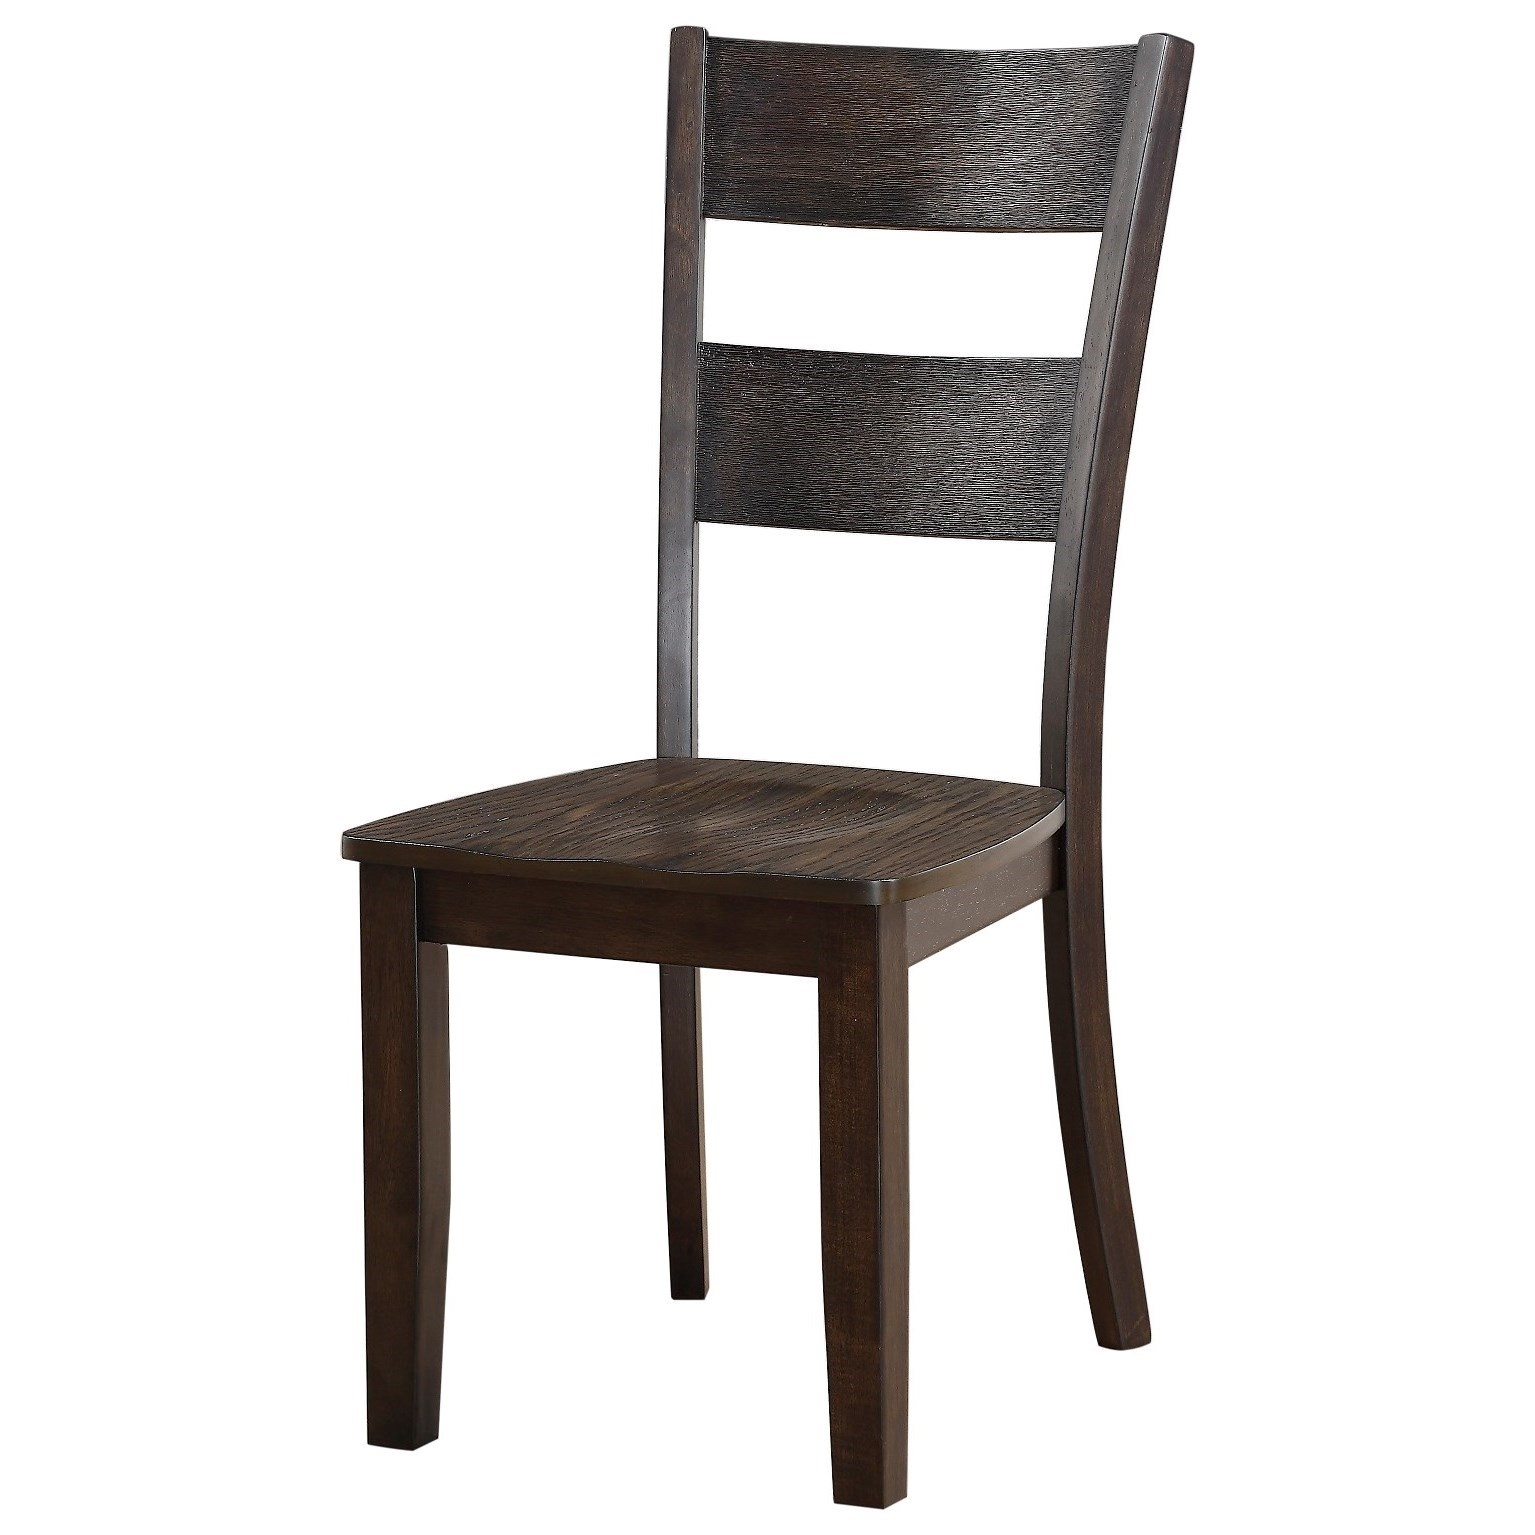 Merrill Creek Dining Chair by Emerald at Northeast Factory Direct